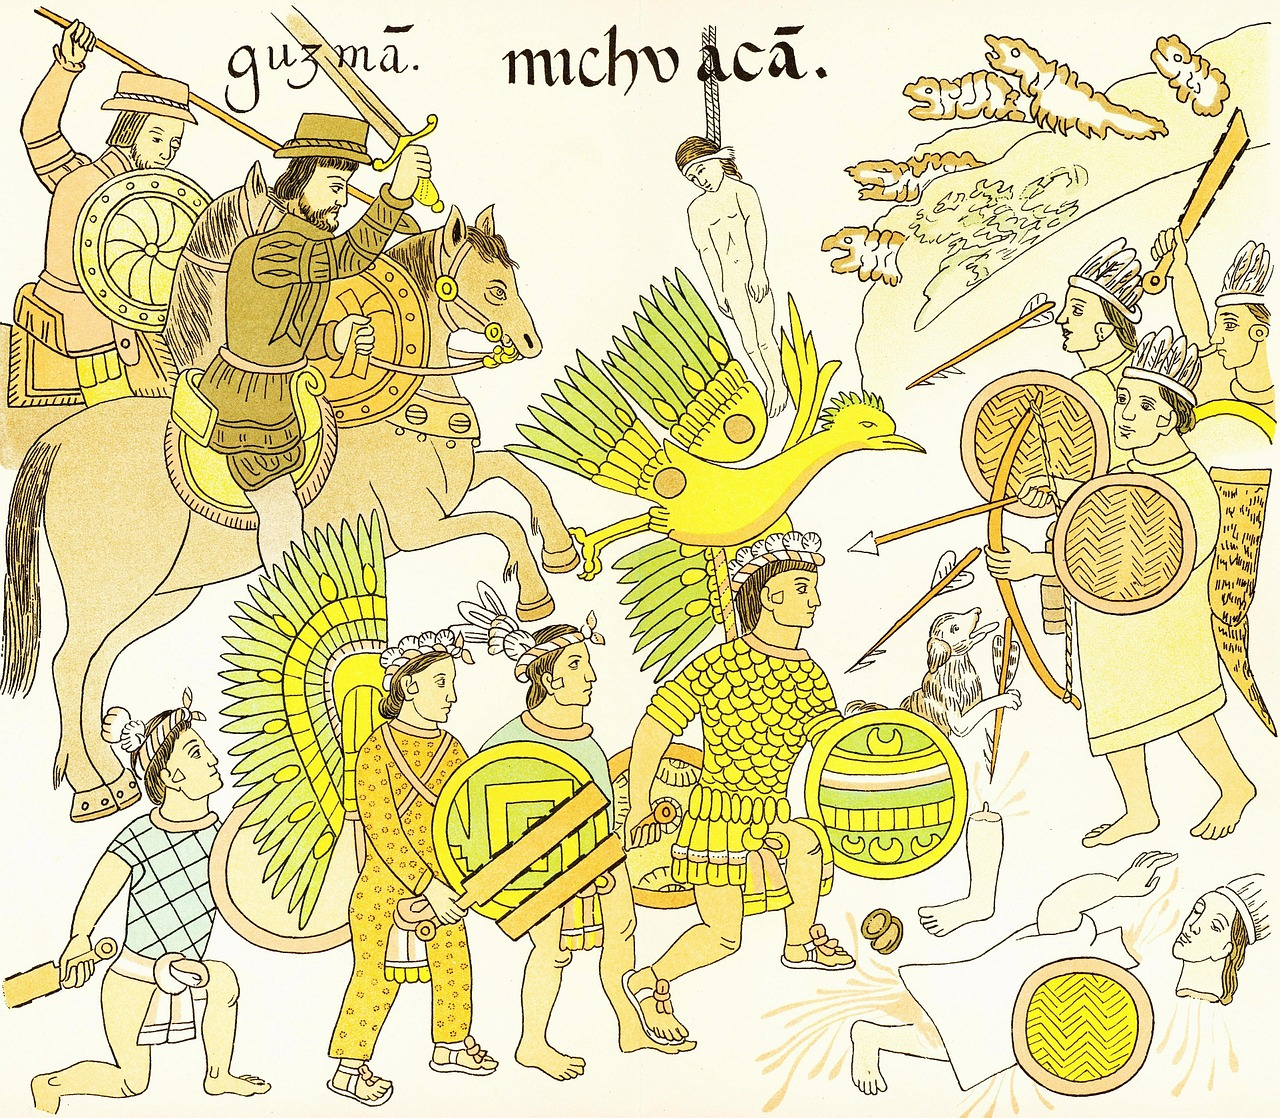 the conquest of the aztec and What are you searching spanish conquest of the aztec empire cortés made alliances with tributaries city-states (altepetl) of the aztec empire as well as their political rivals, particularly the tlaxcalteca and texcocans, a former partner in the aztec triple alliance.